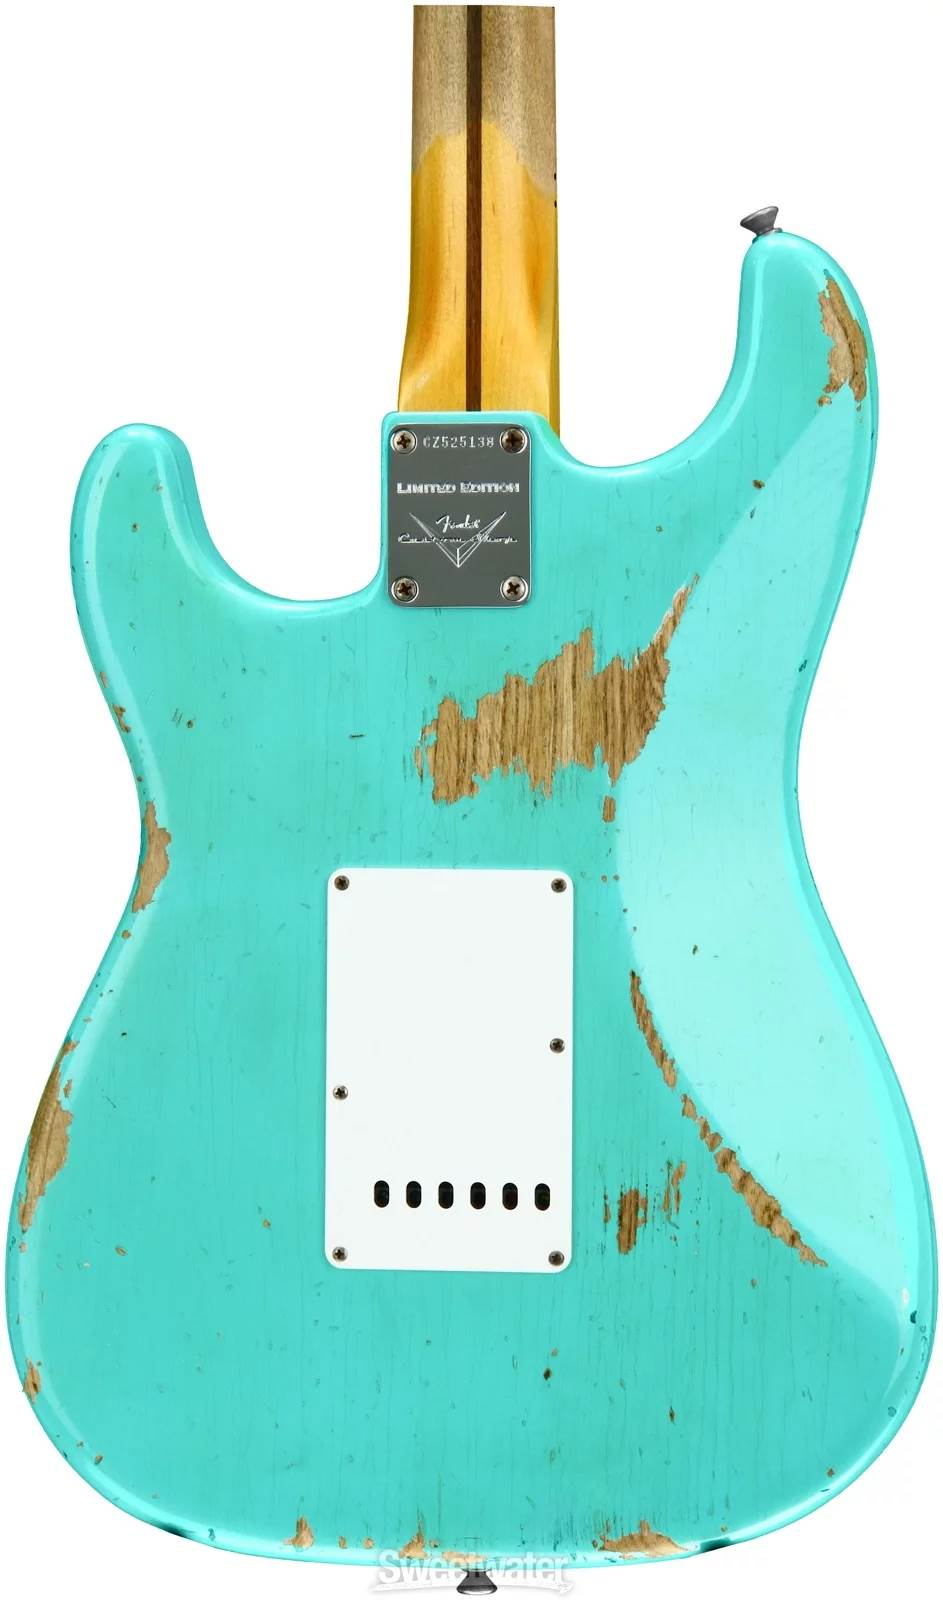 Limited Edition 1956 Relic Stratocaster (2016) - FuzzFaced